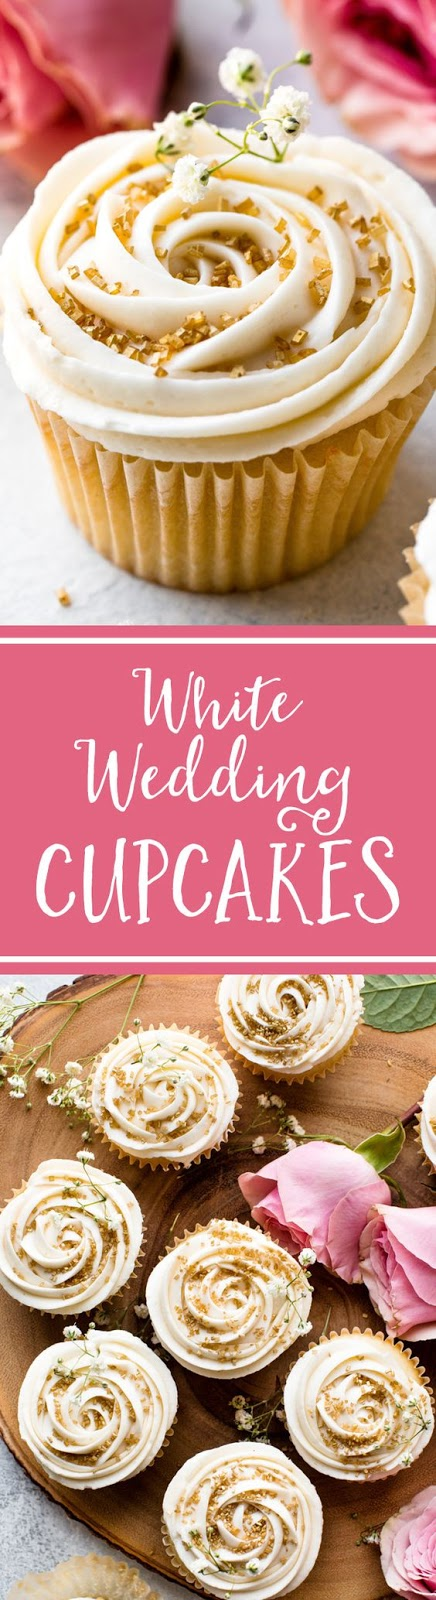 Wedding Cupcakes with Champagne Frosting